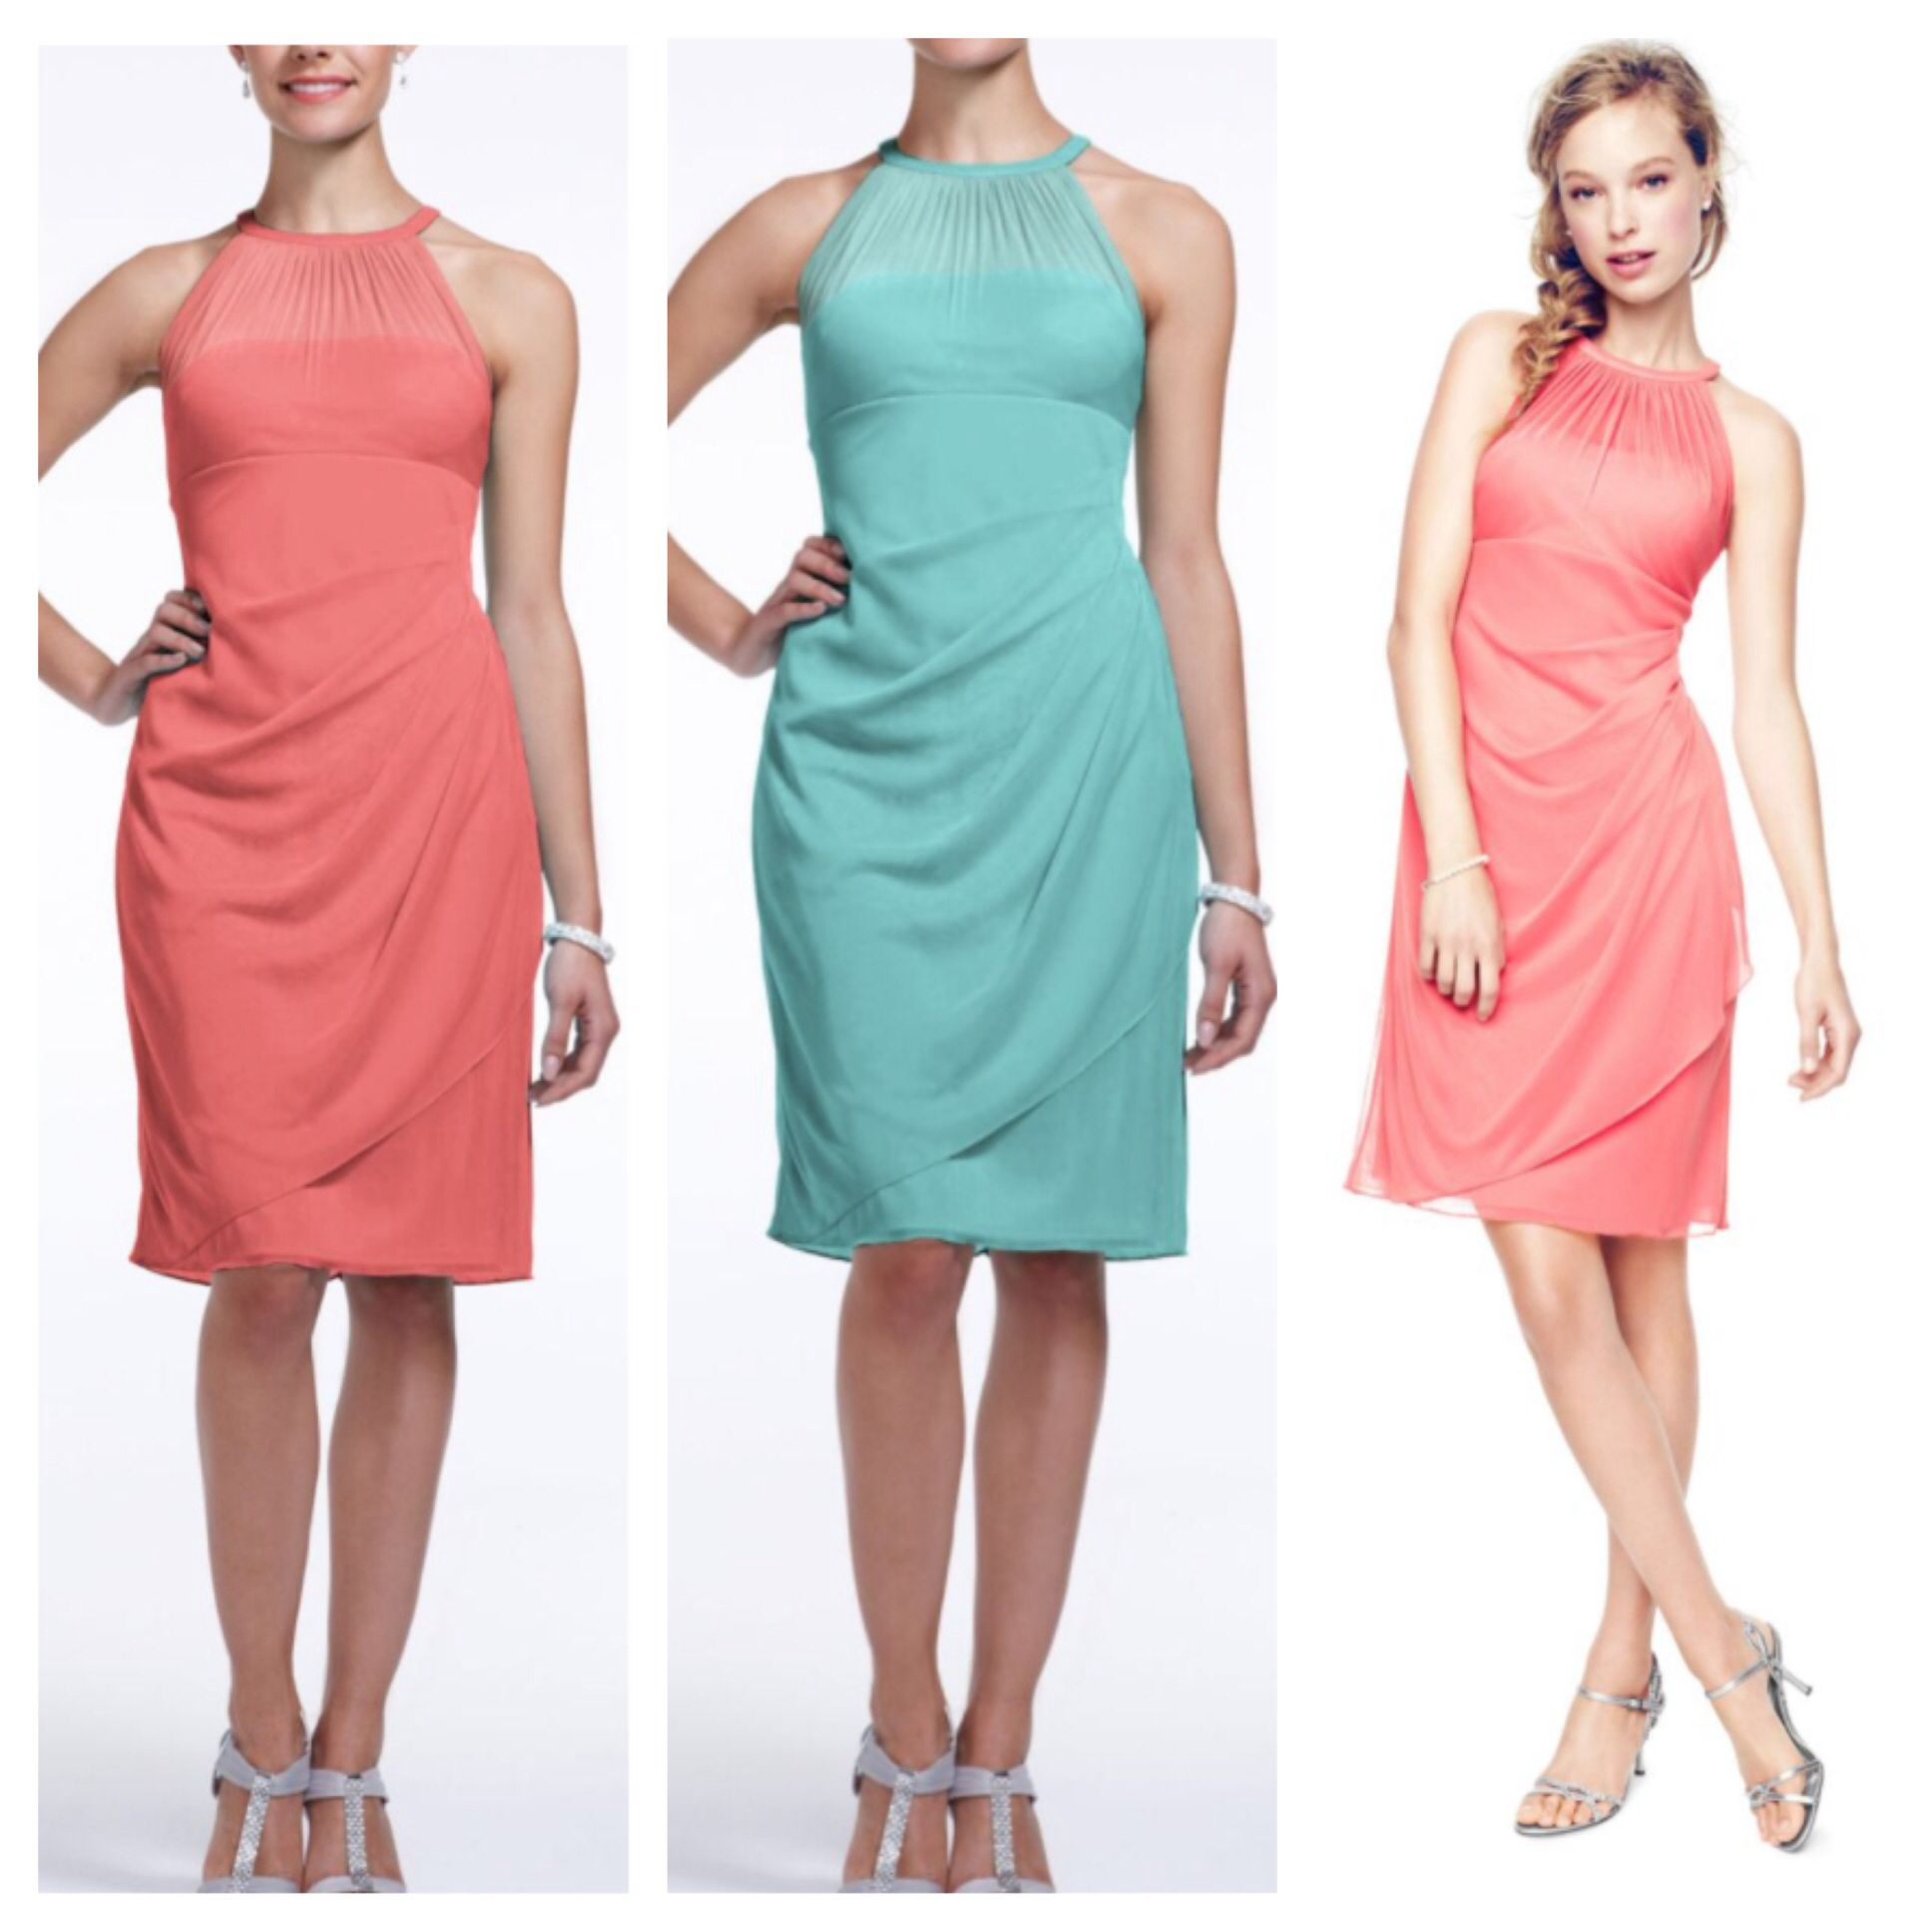 Wedding colors coral reef and spa blue maid of honor will be wearing ...